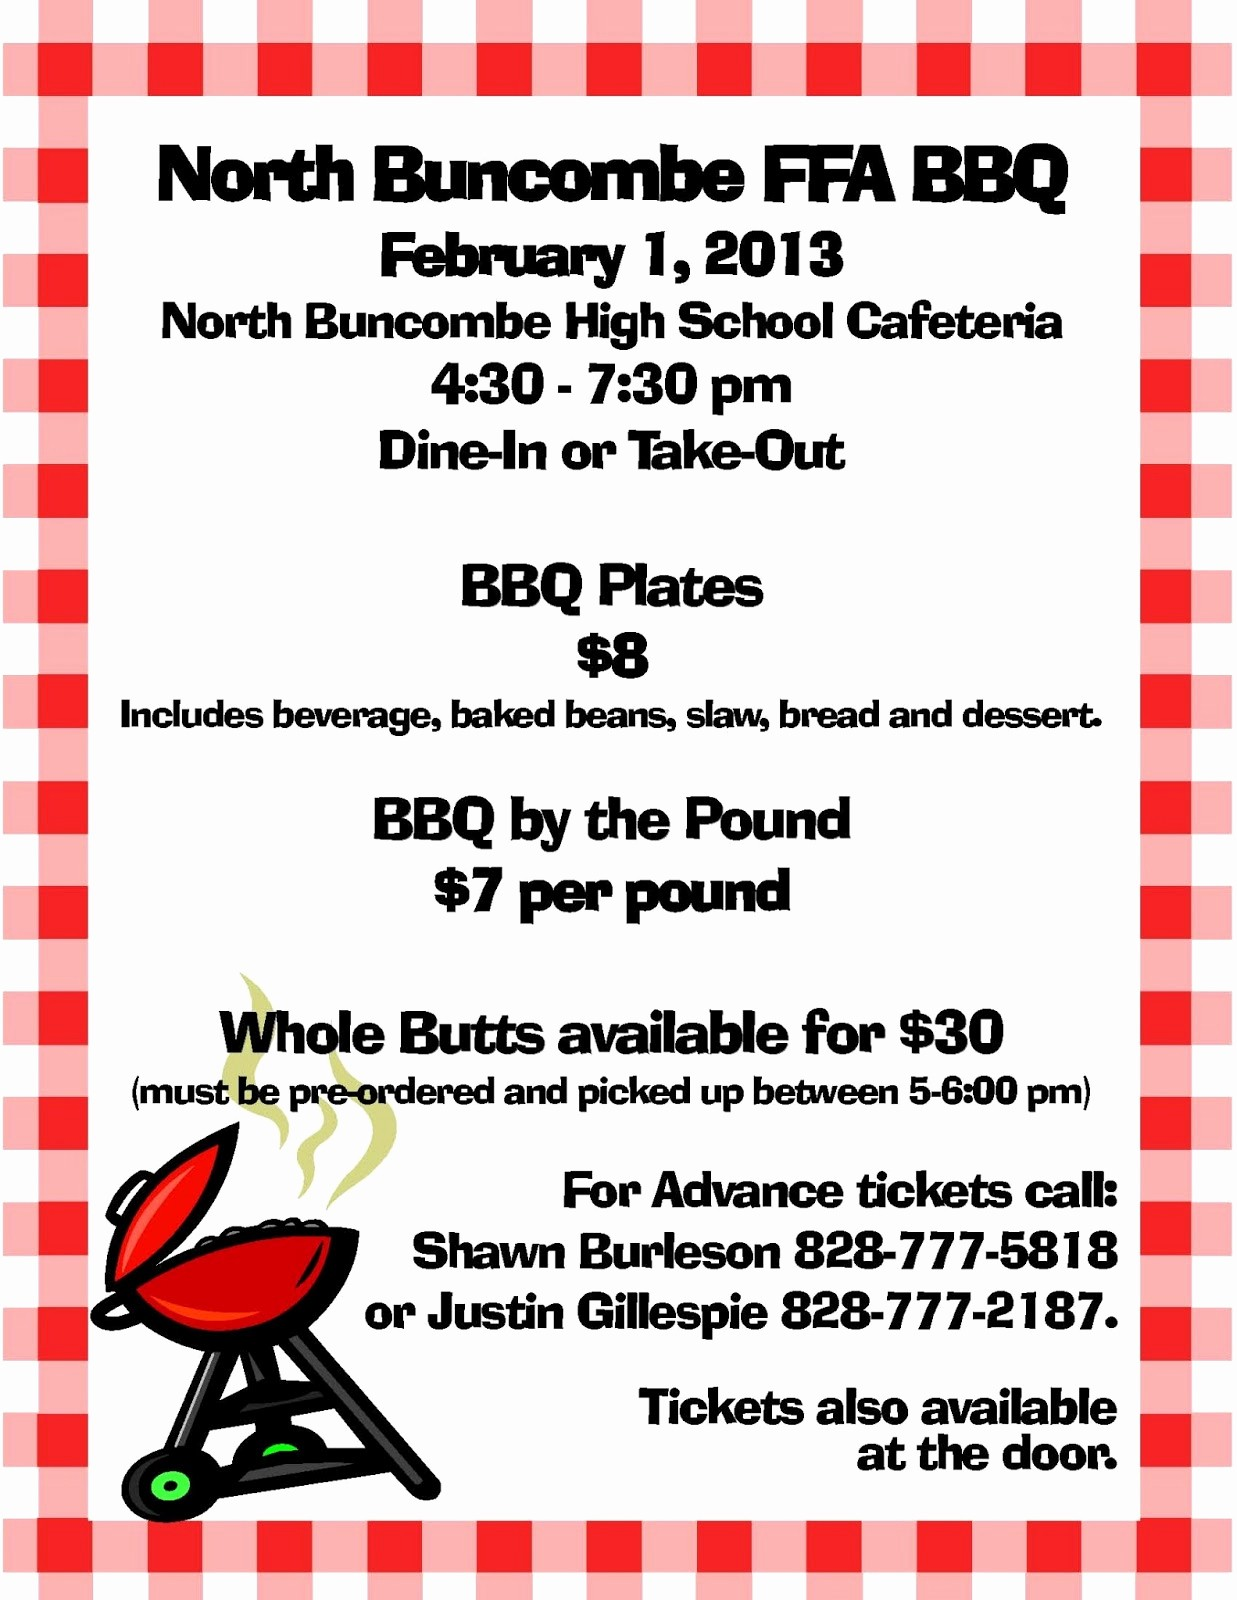 Bbq Fundraiser Flyer Templates Free Fresh ask Wnc north Bun Be Ffa Chapter Announces Scholarship